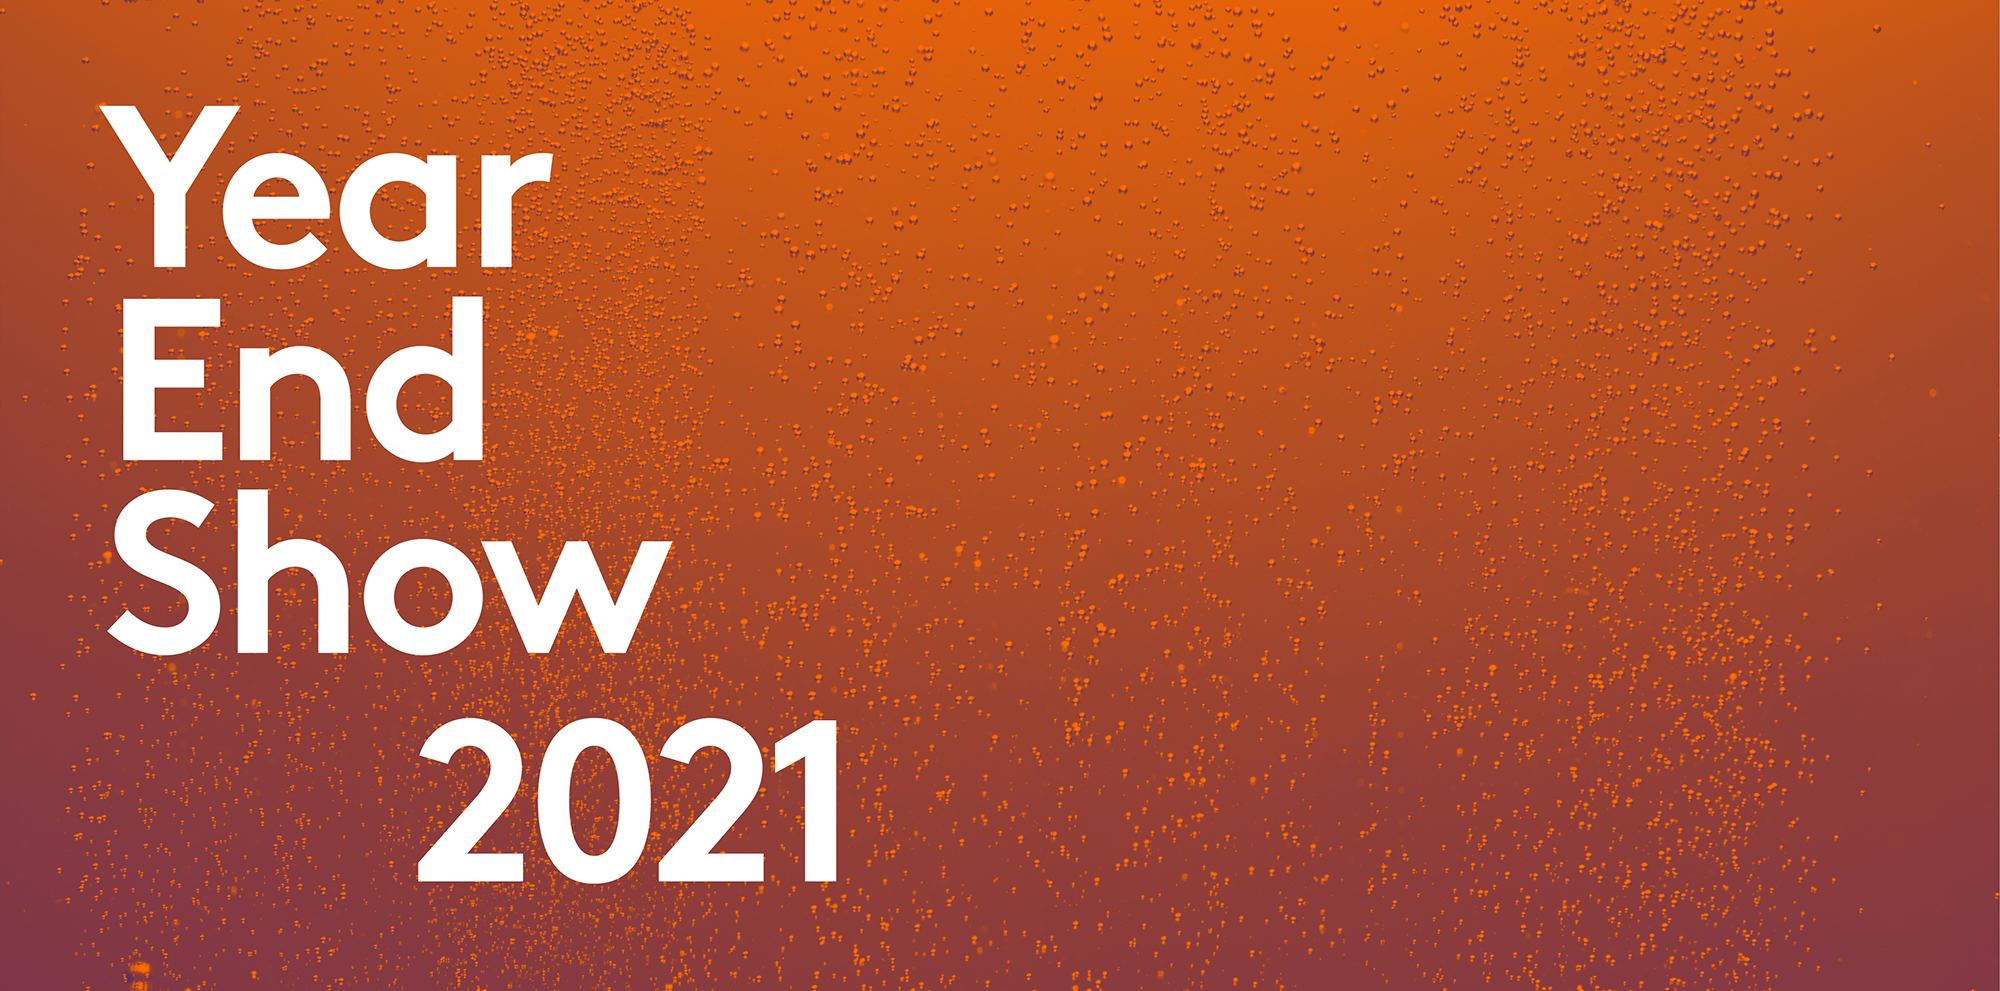 Year End Show 2021